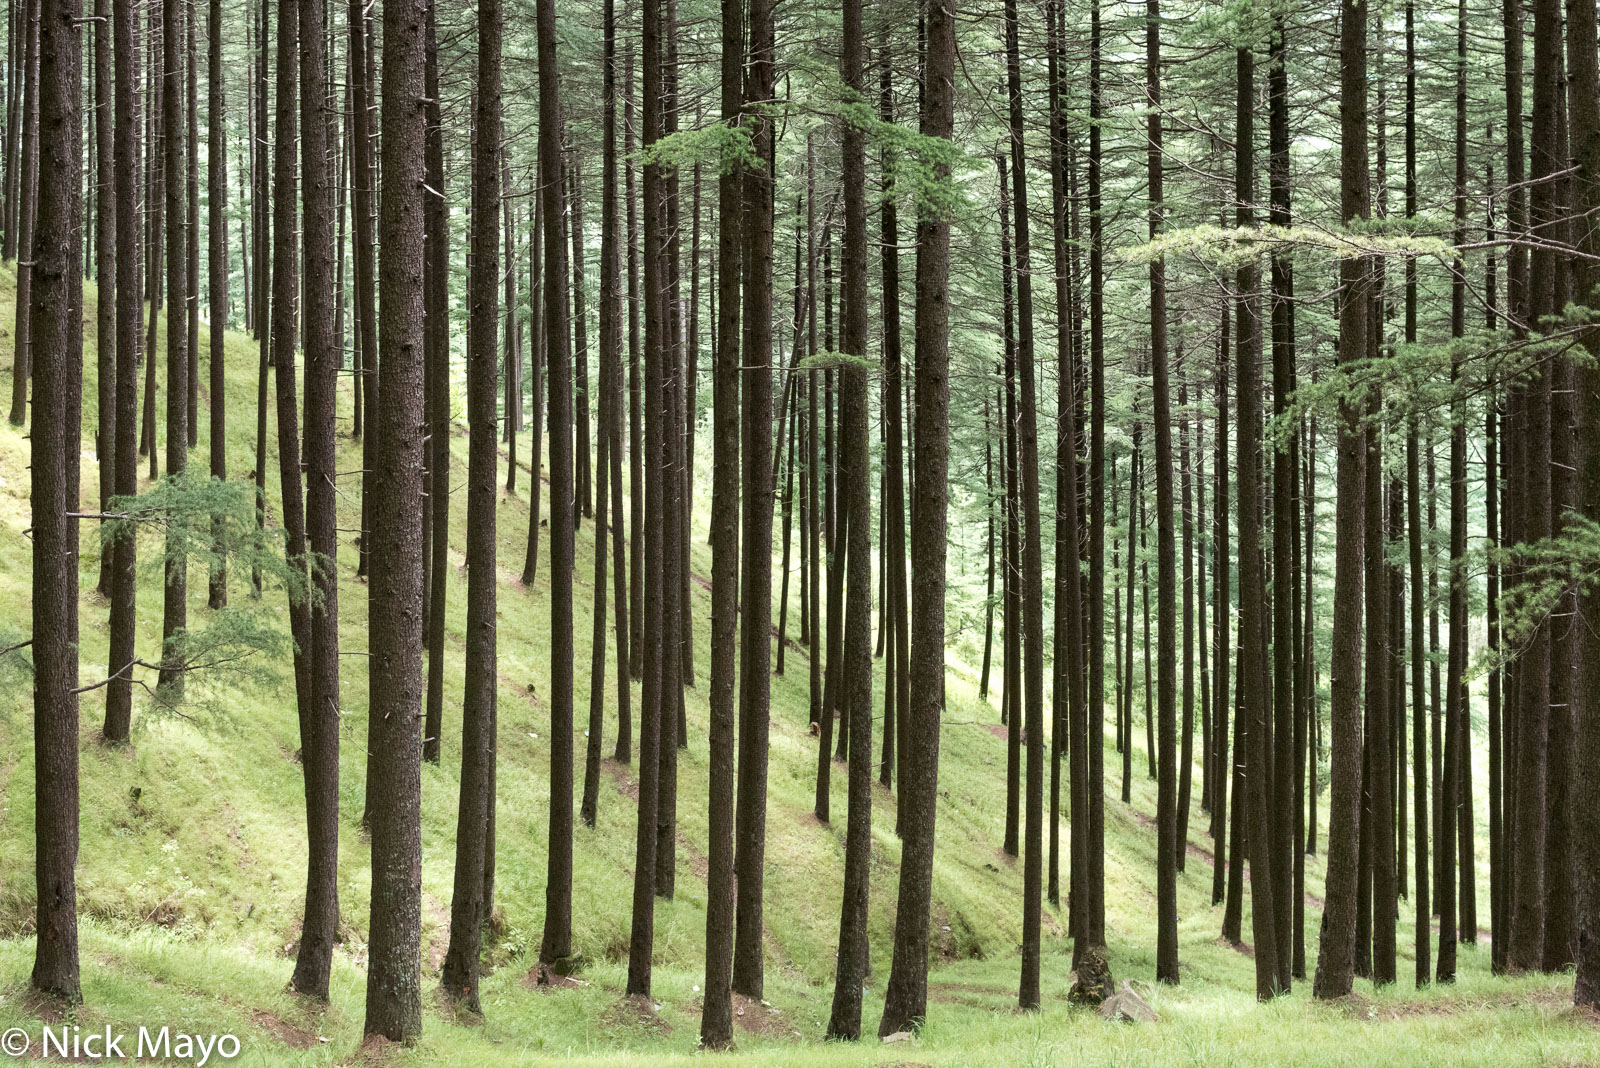 Lebanese cedar forest near the village of Nathan in the Kulu valley.